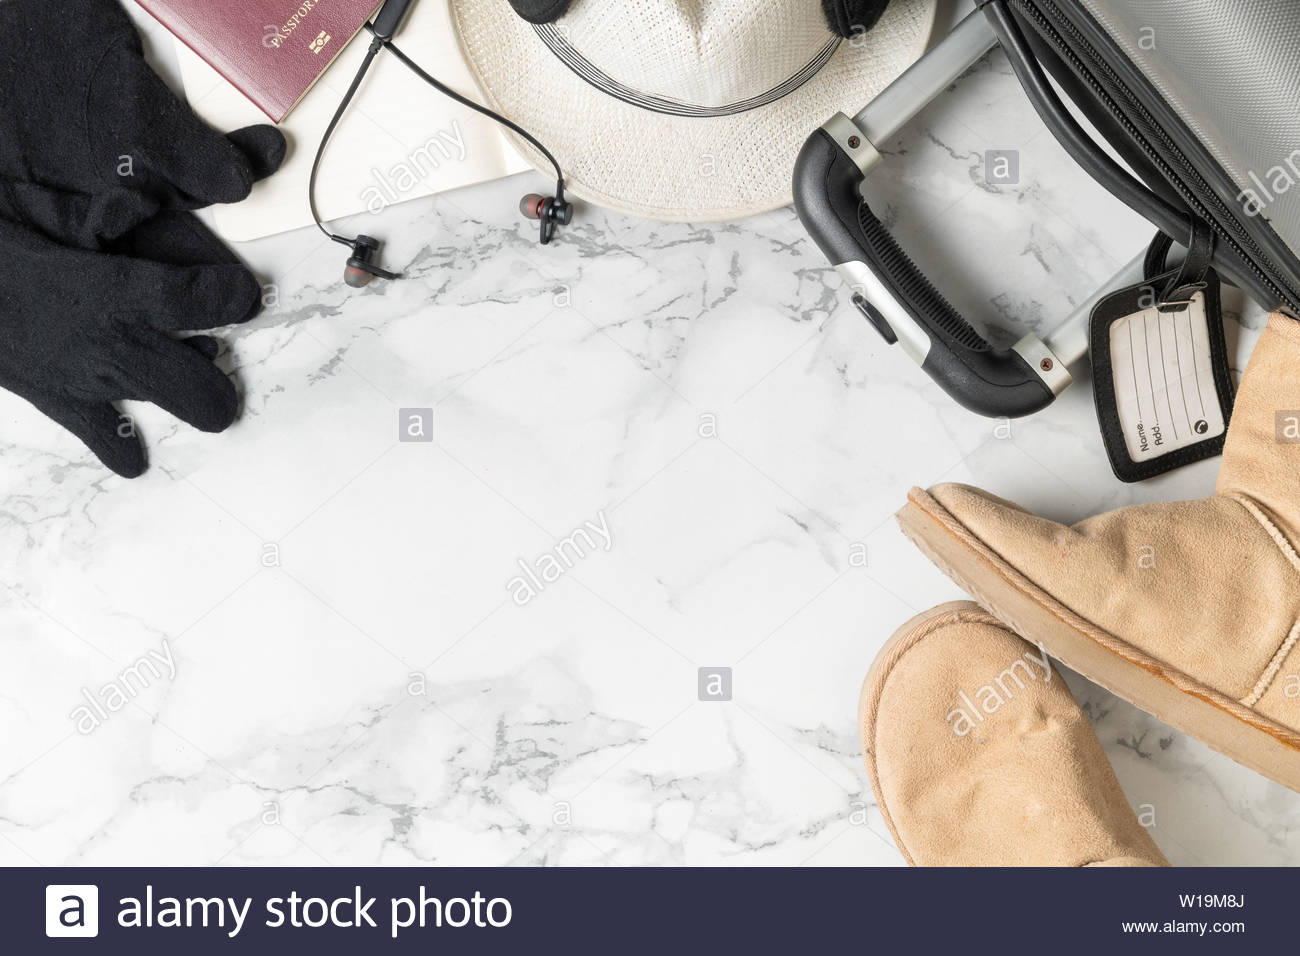 prepare suitcase accessories and travel items for winter on marble 1300x956